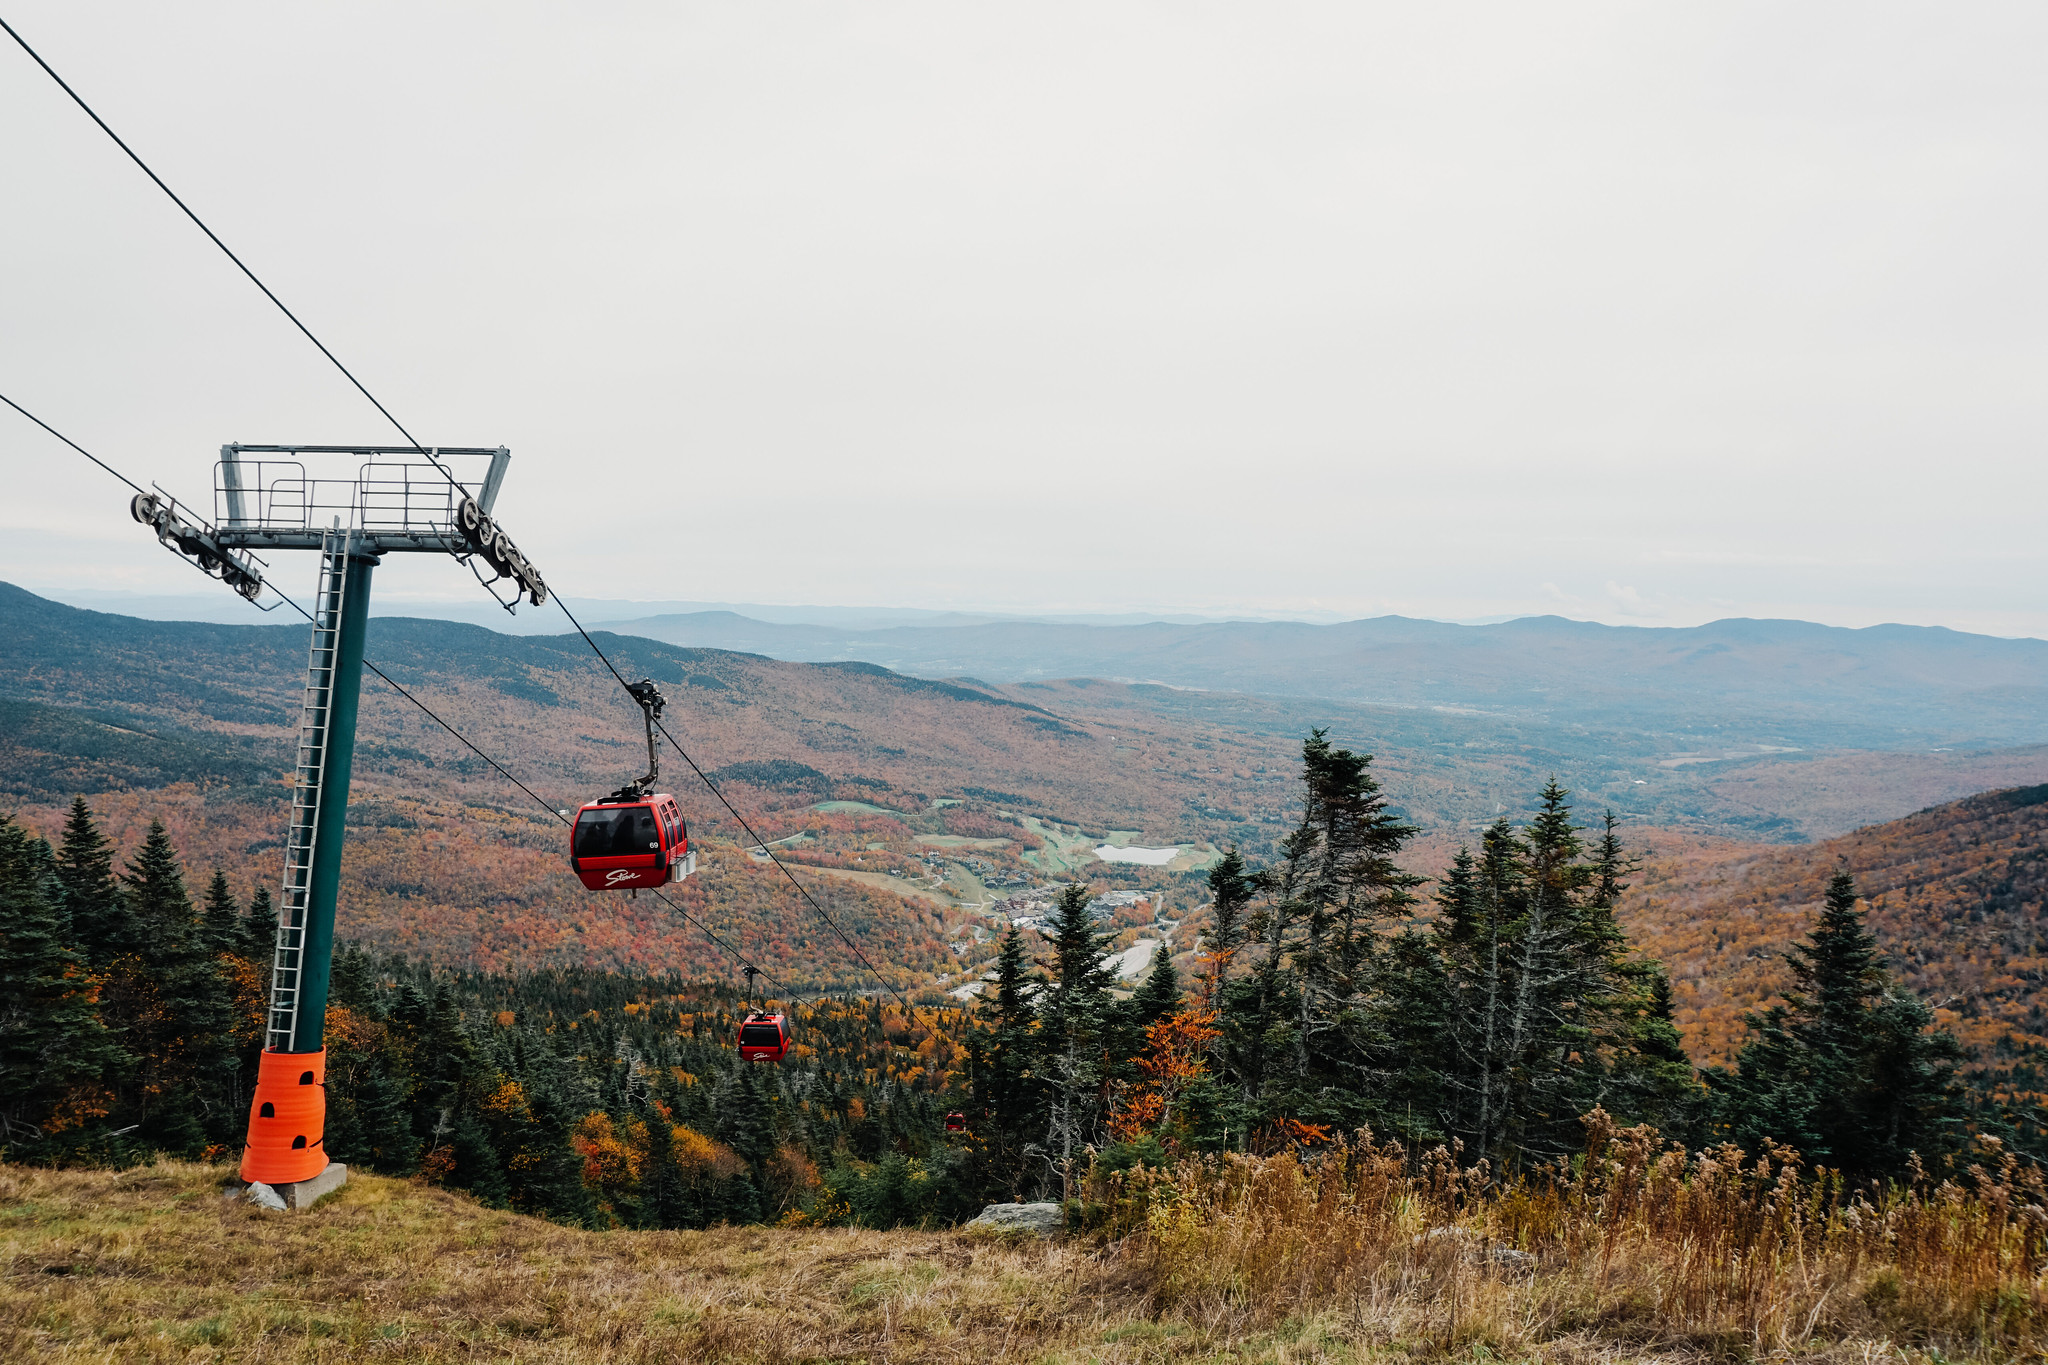 Gondola Skyride at Stowe Mountain Resort Mount Mansfield | Stowe VT | My Complete Vermont Fall Travel Guide: What to See, Do & Eat | Ultimate Fall Guide to Vermont | 5 Day Vermont Road Trip | Fall Foliage Road Trip Guide